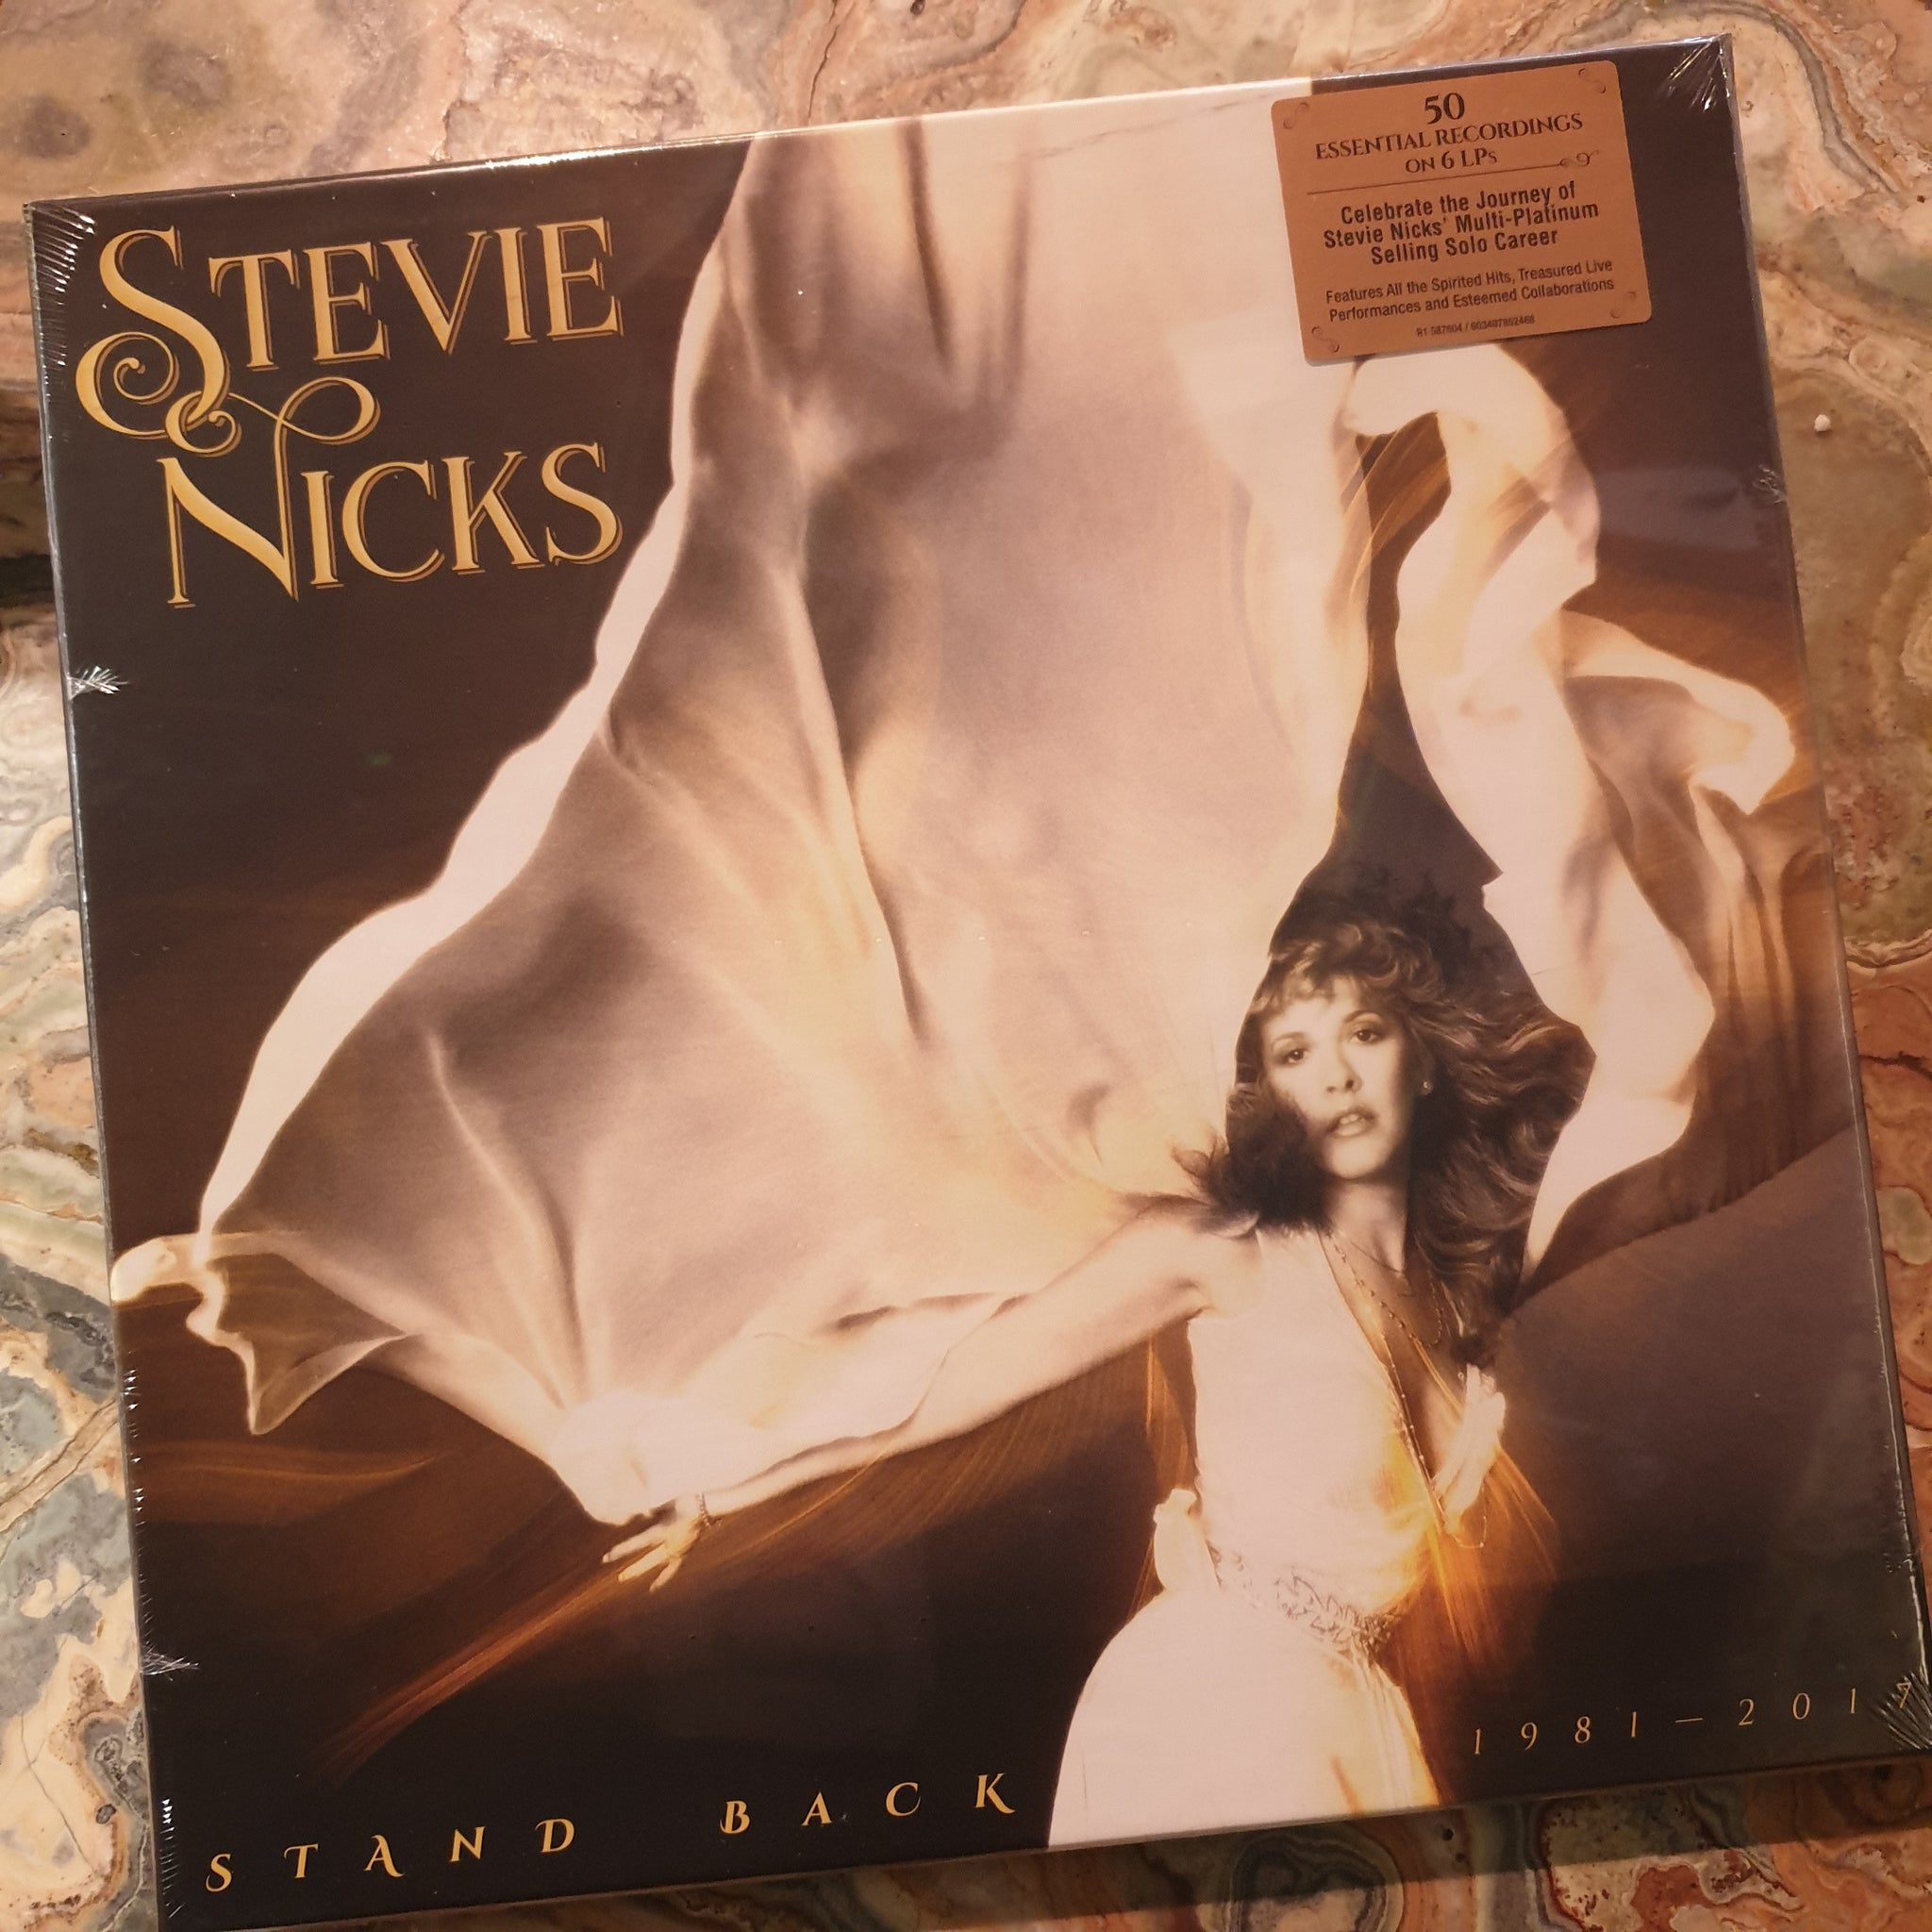 NEW - Stevie Nicks, Stand Back 1981-2017 - 6 LP